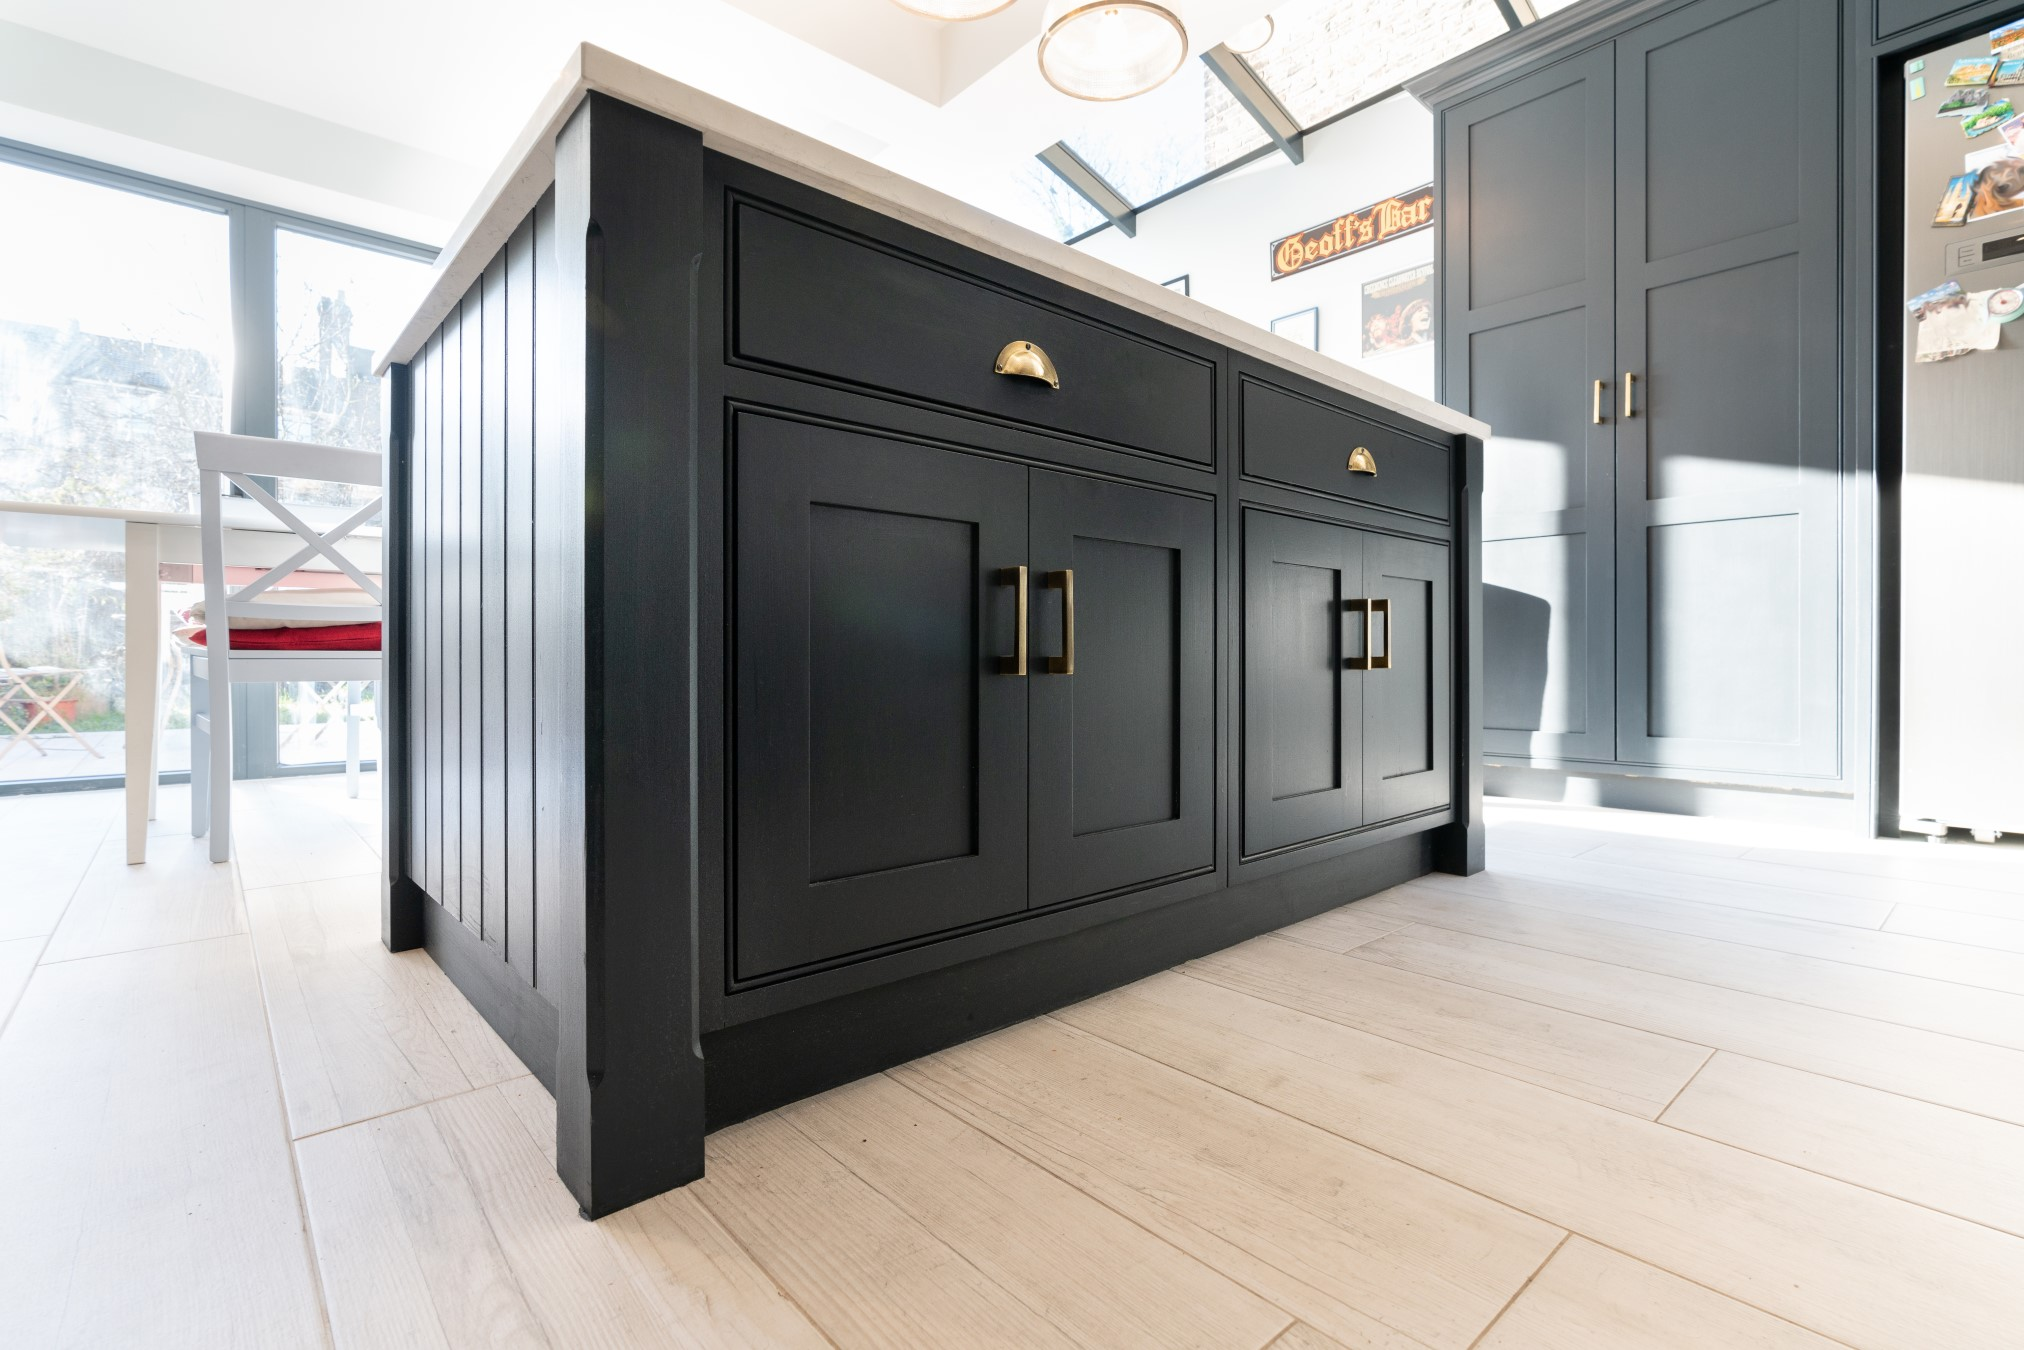 Farrow And Ball Railings Paint introducing dark colours in the kitchen from farrow & ball